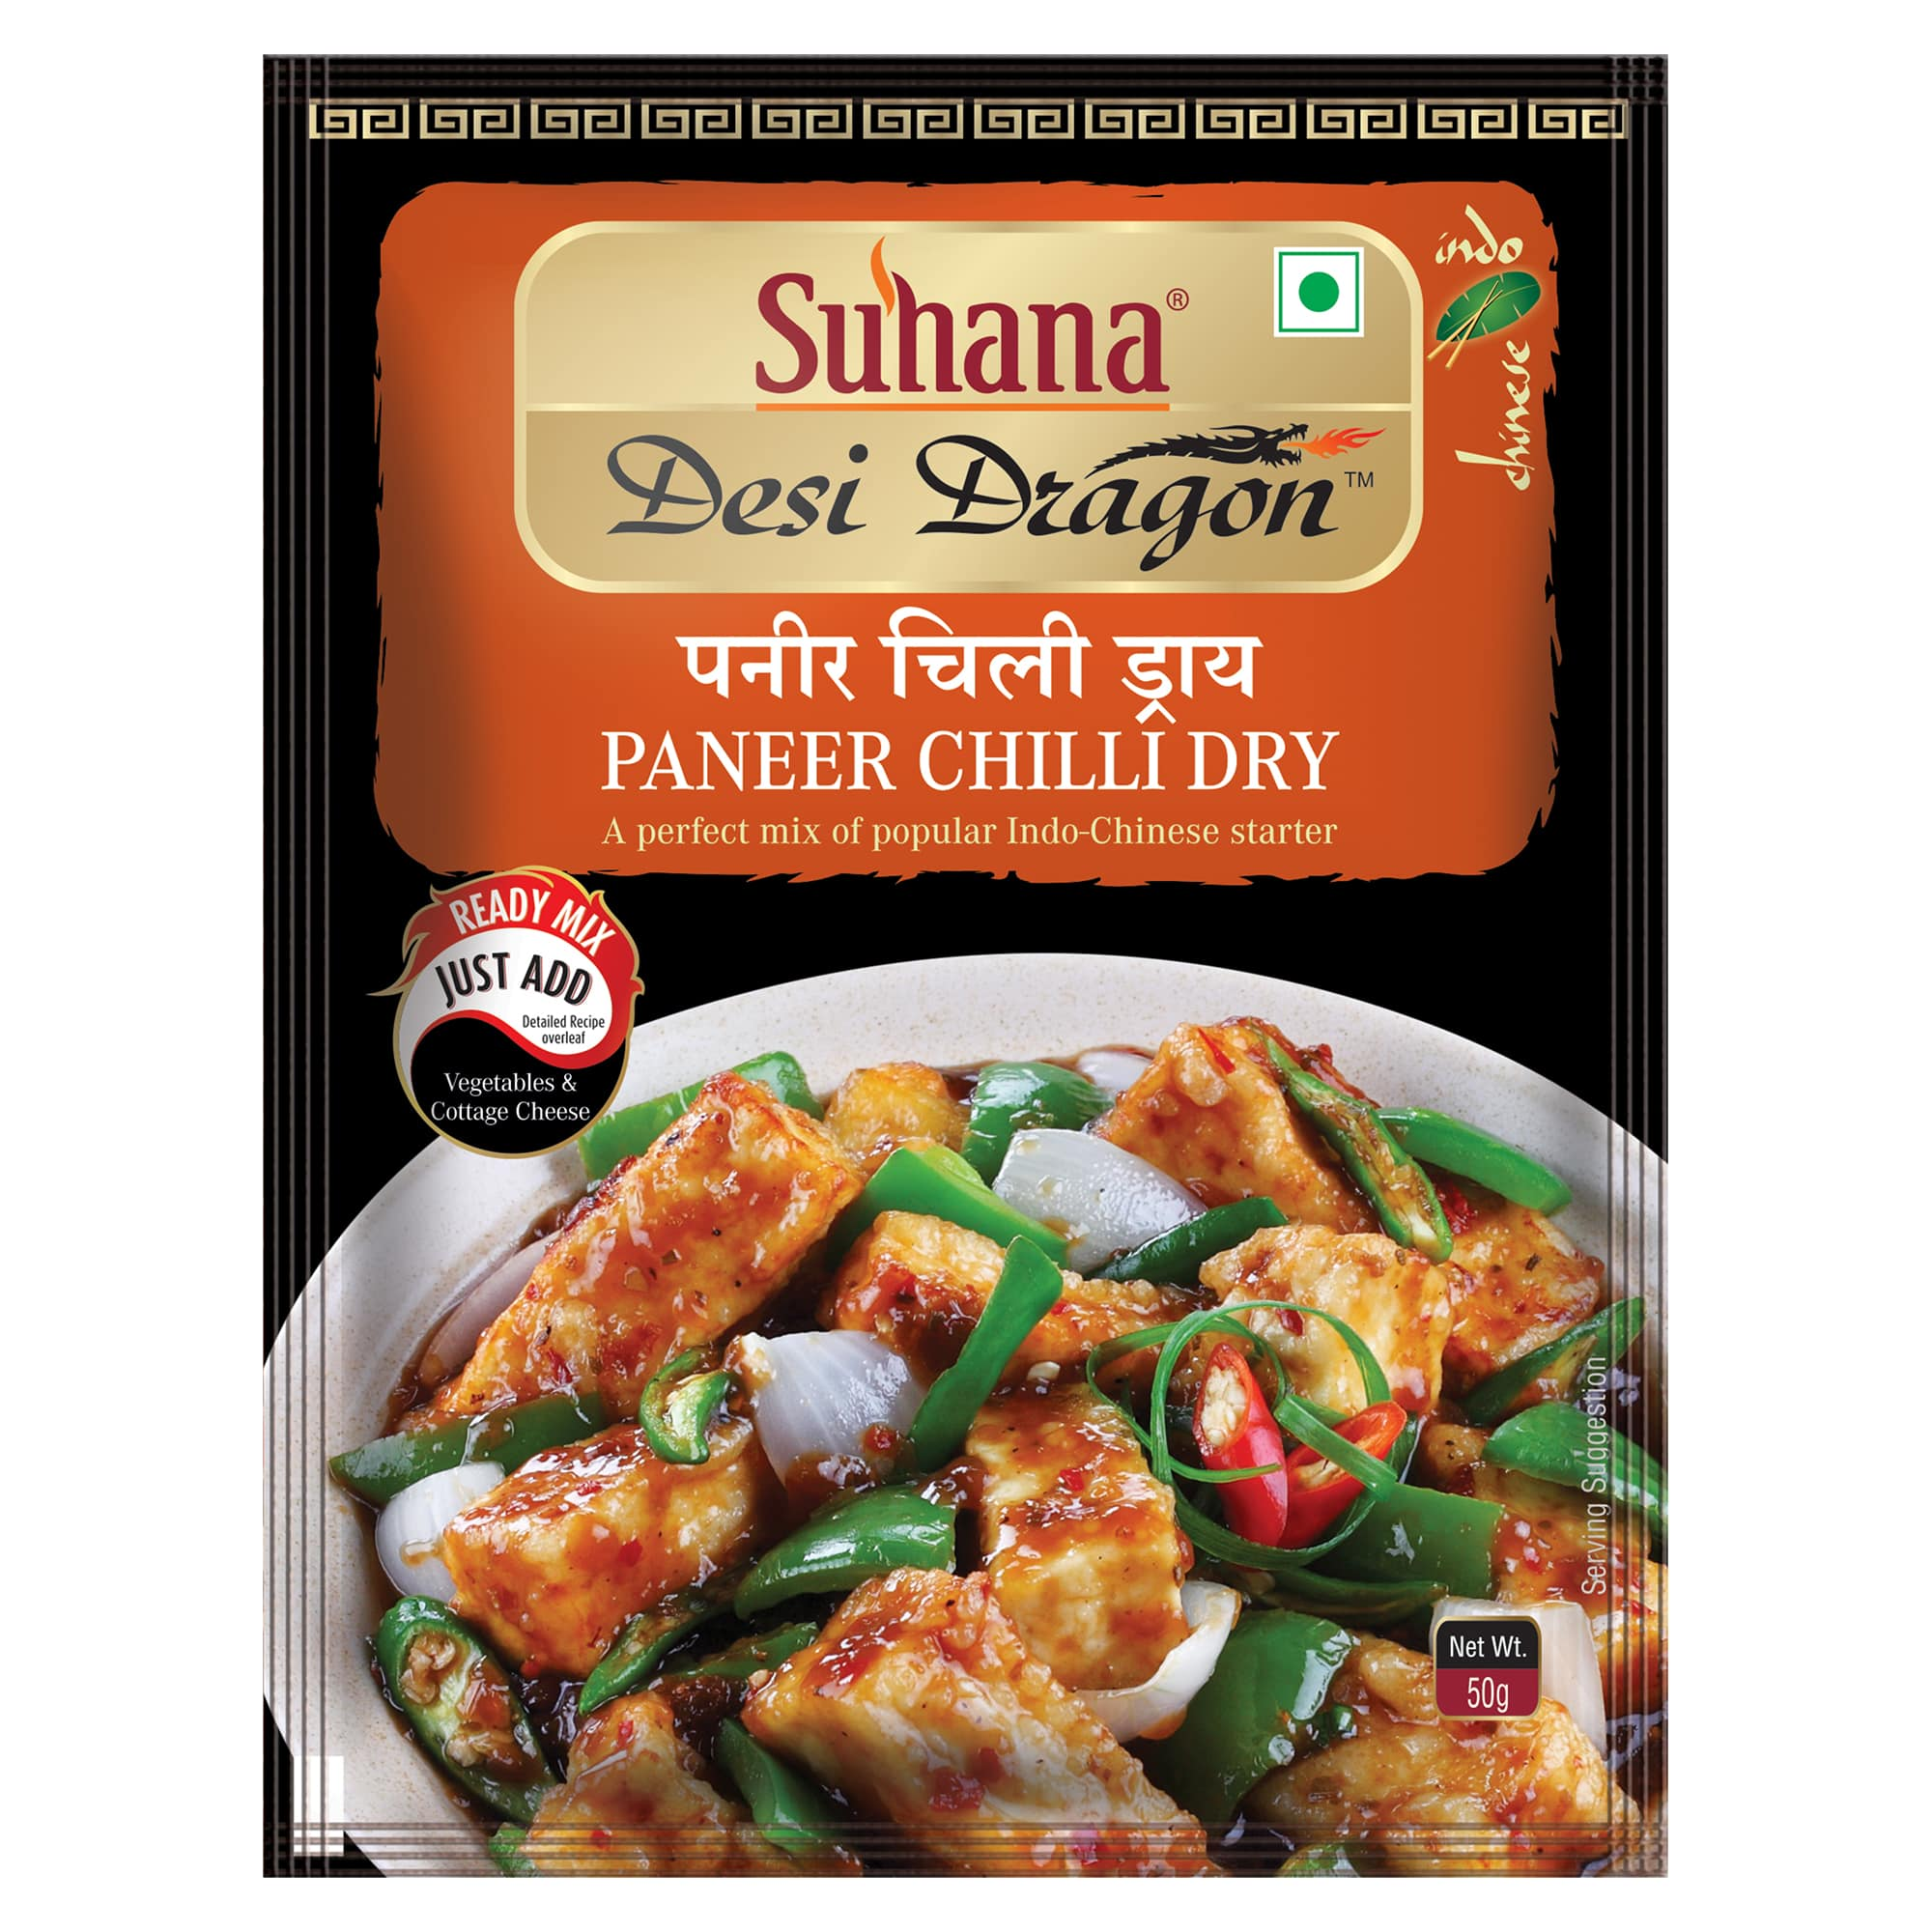 Suhana Paneer Chilli (Dry) Mix 50g Pouch